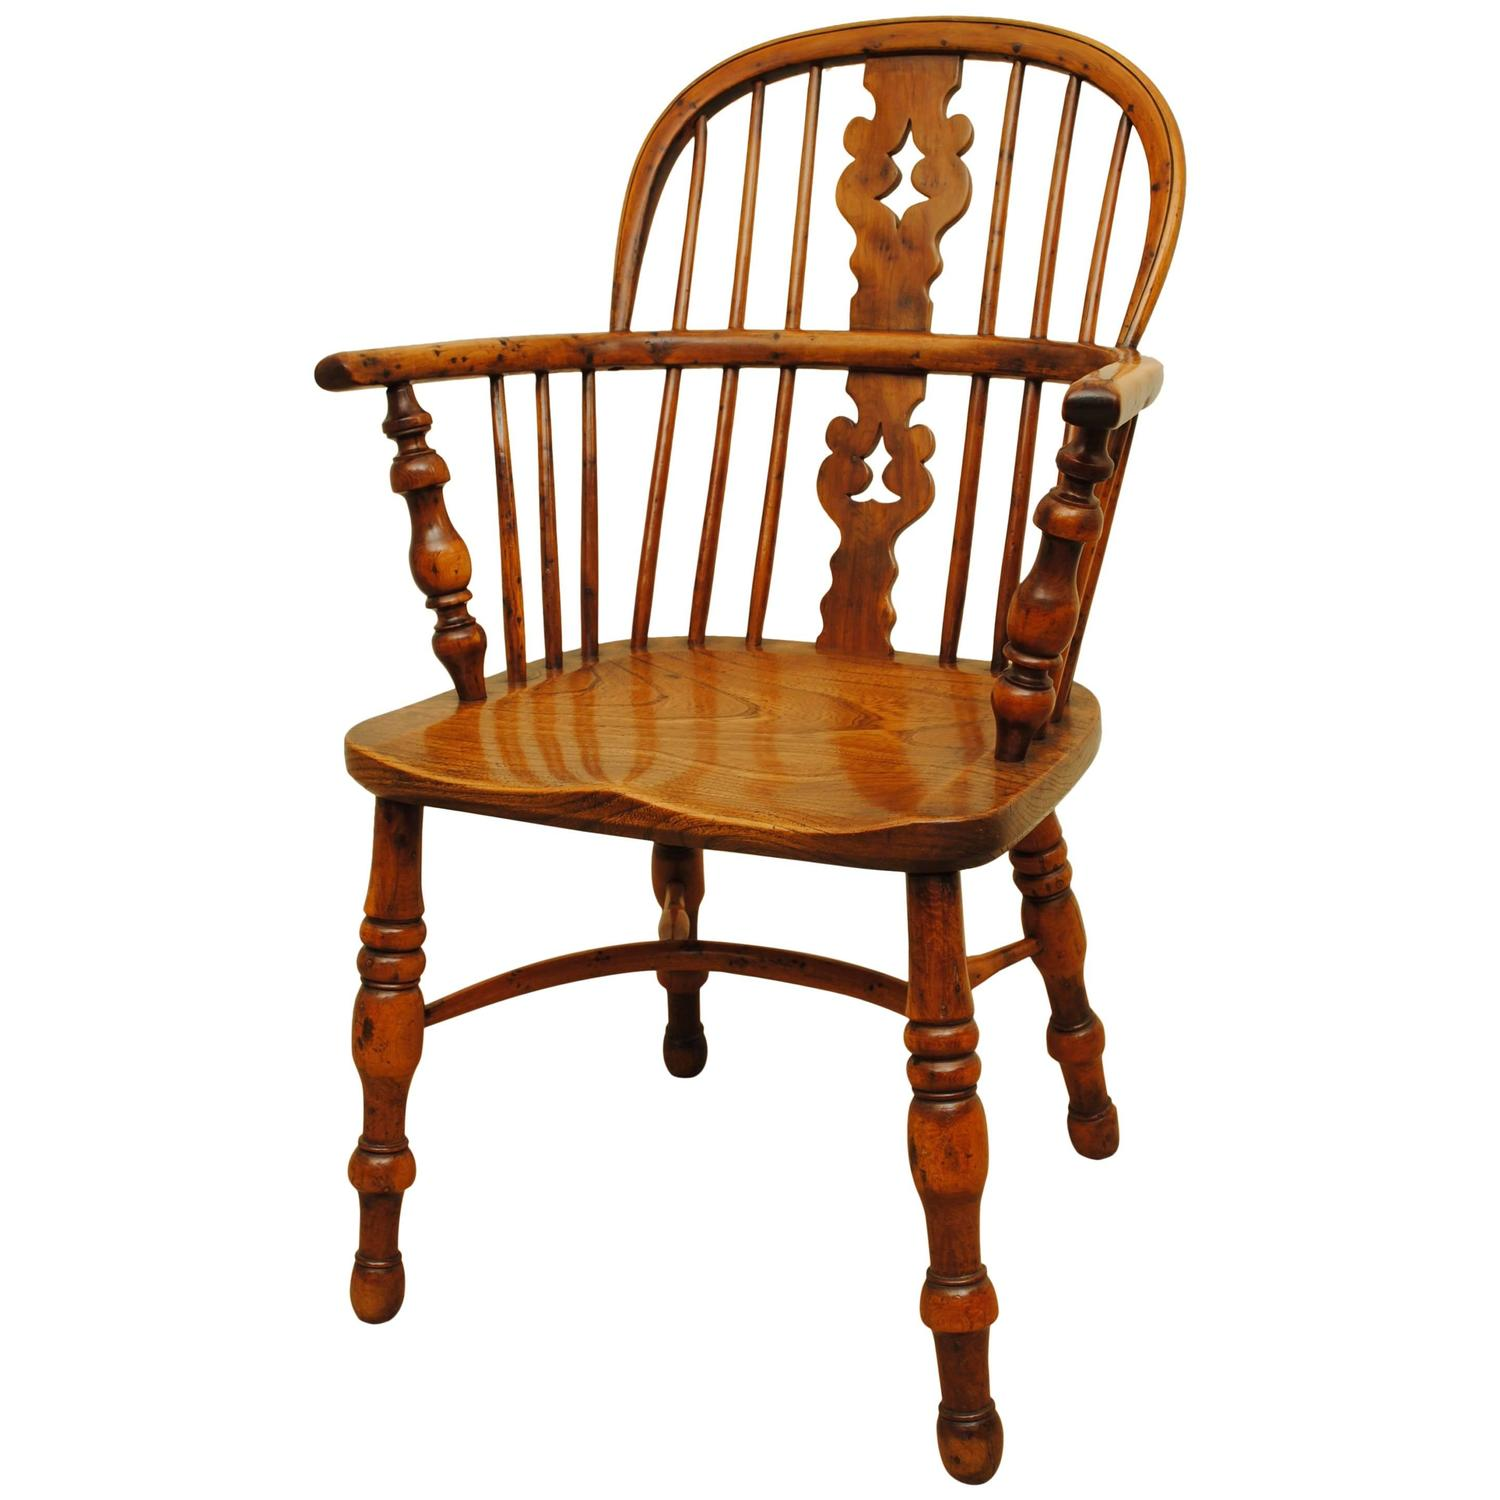 Good Example Of A Yew Wood Windsor Chair For Sale At 1stdibs